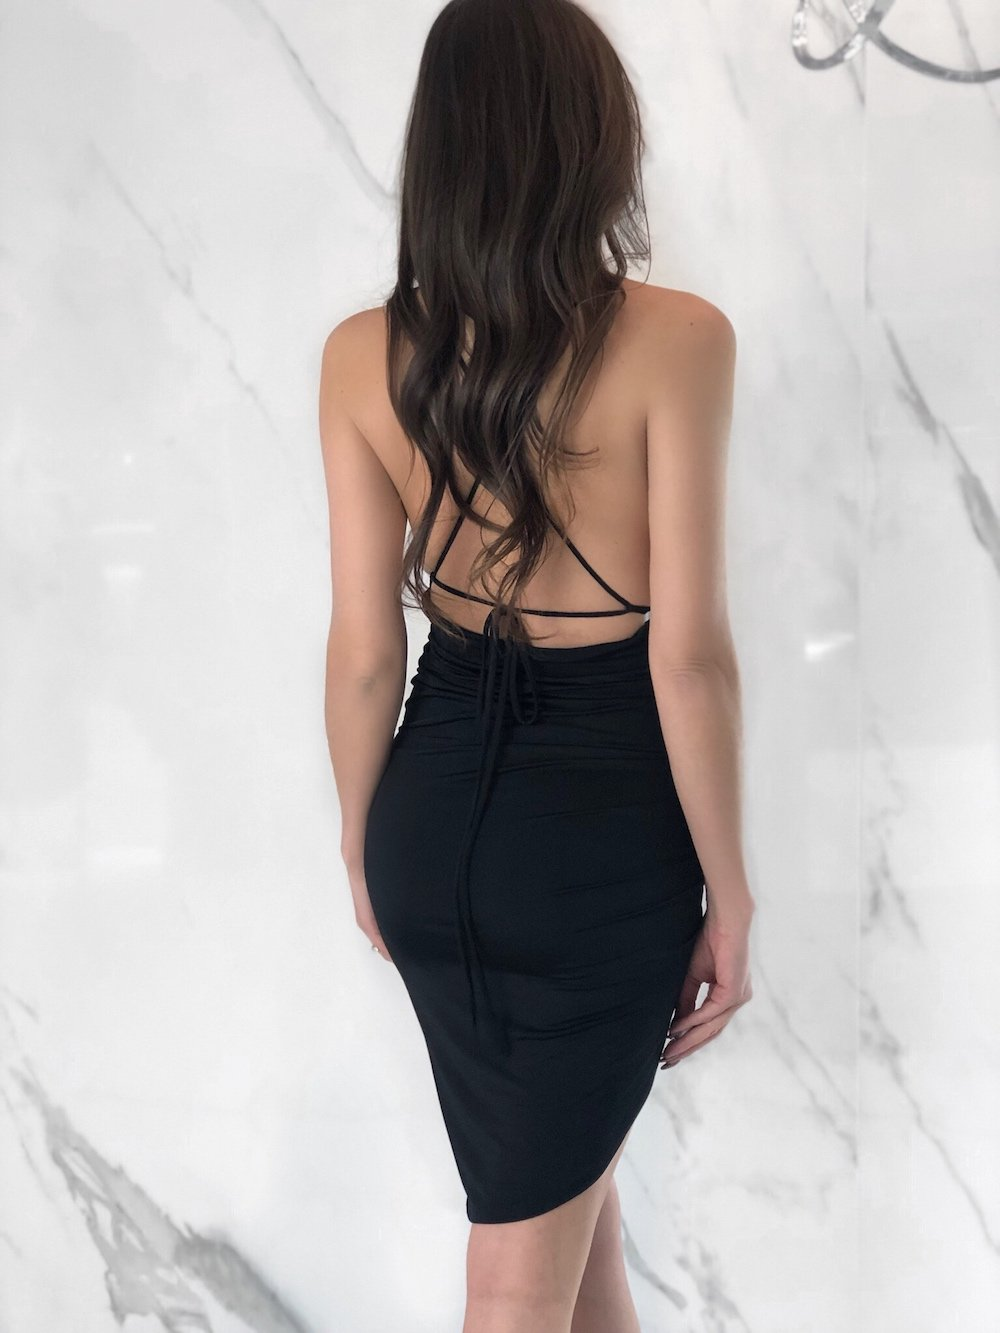 Laura Dress, Women's Black Dresses